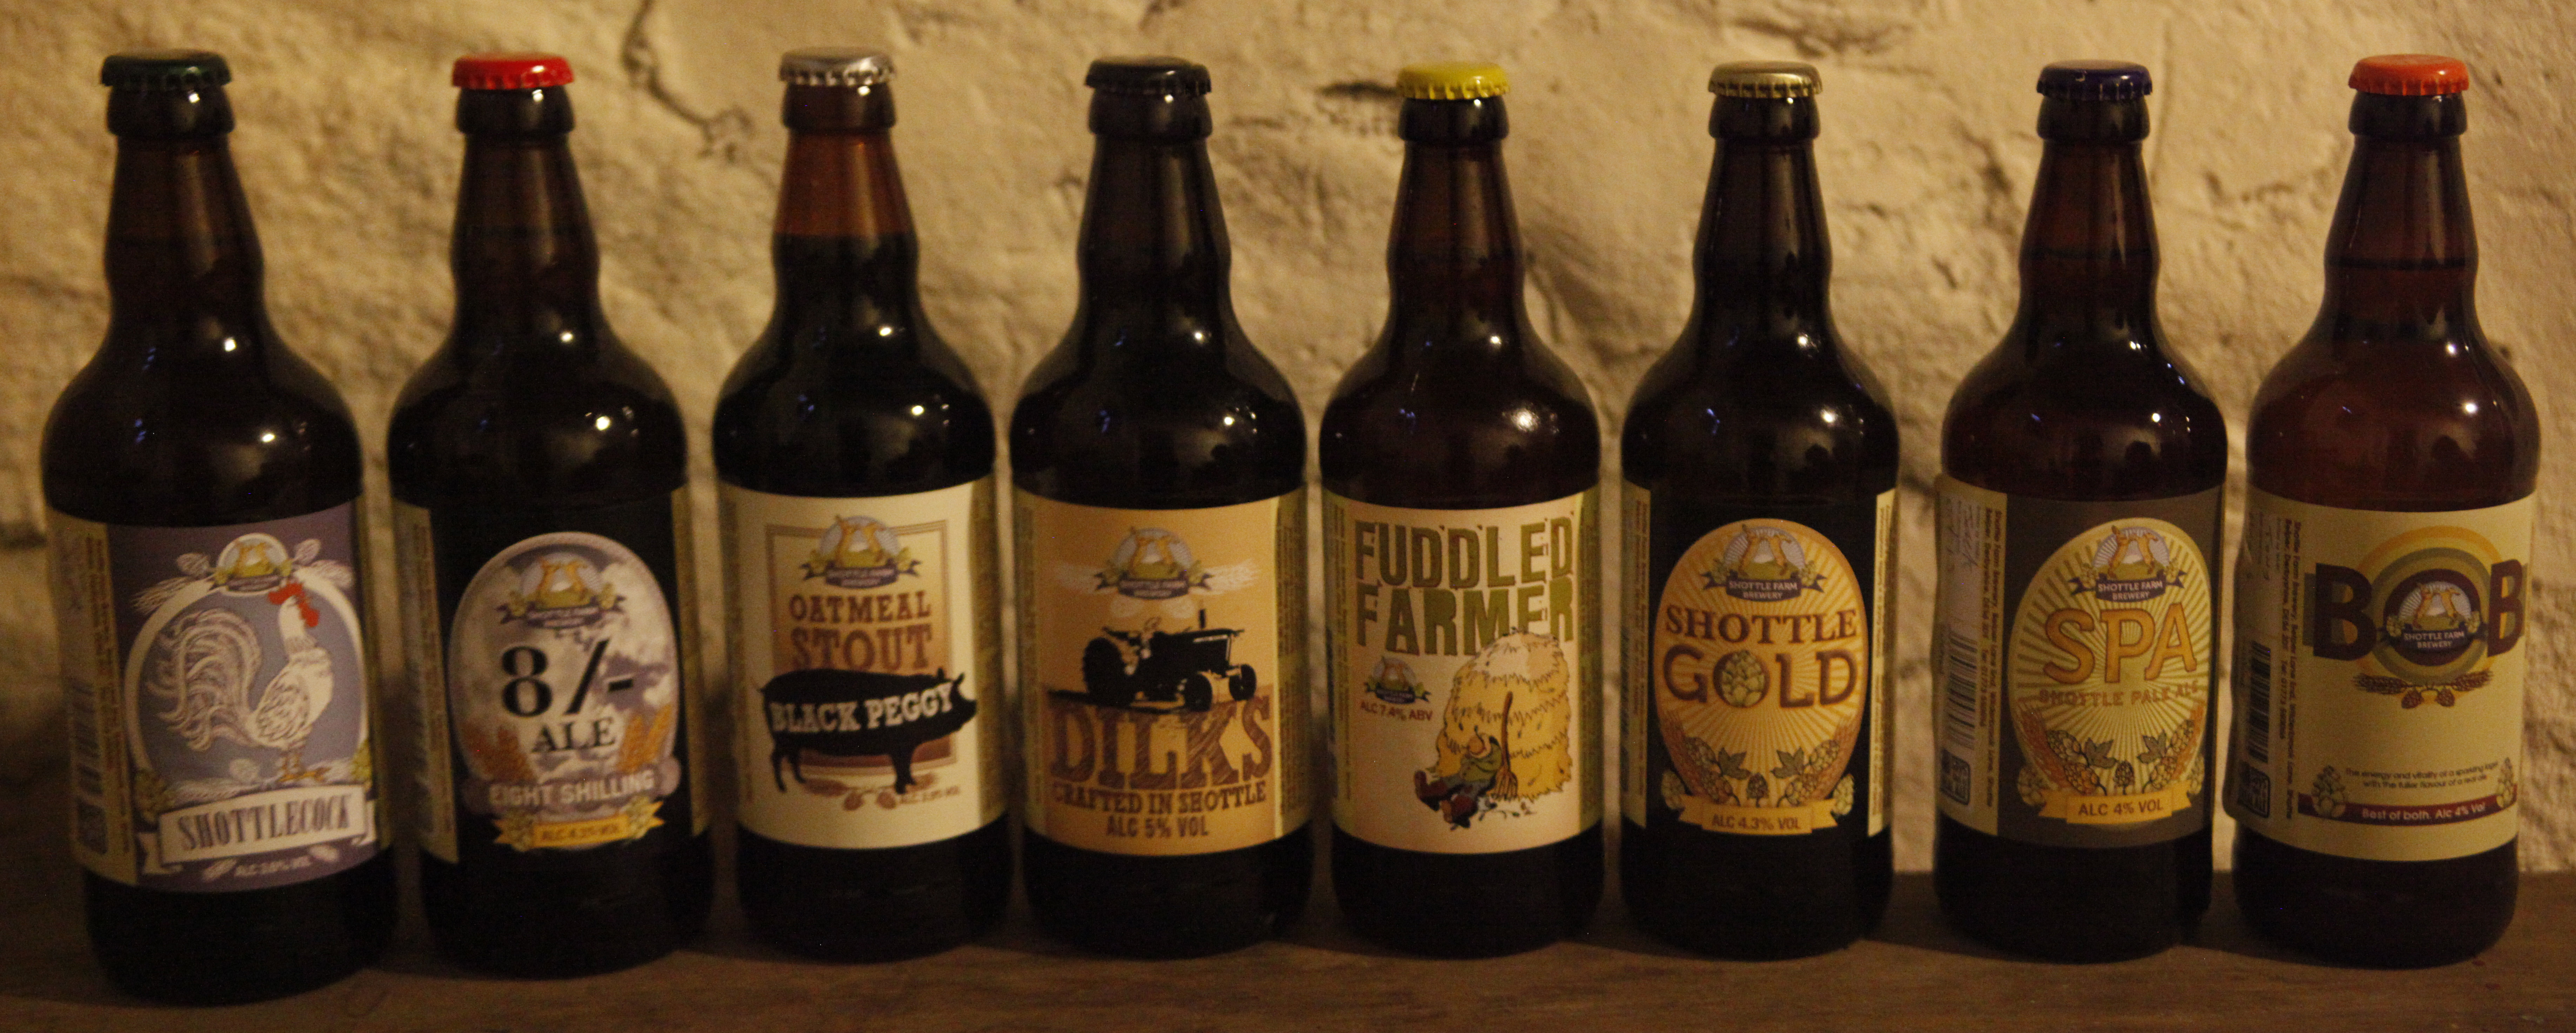 Our variety of bottled ales